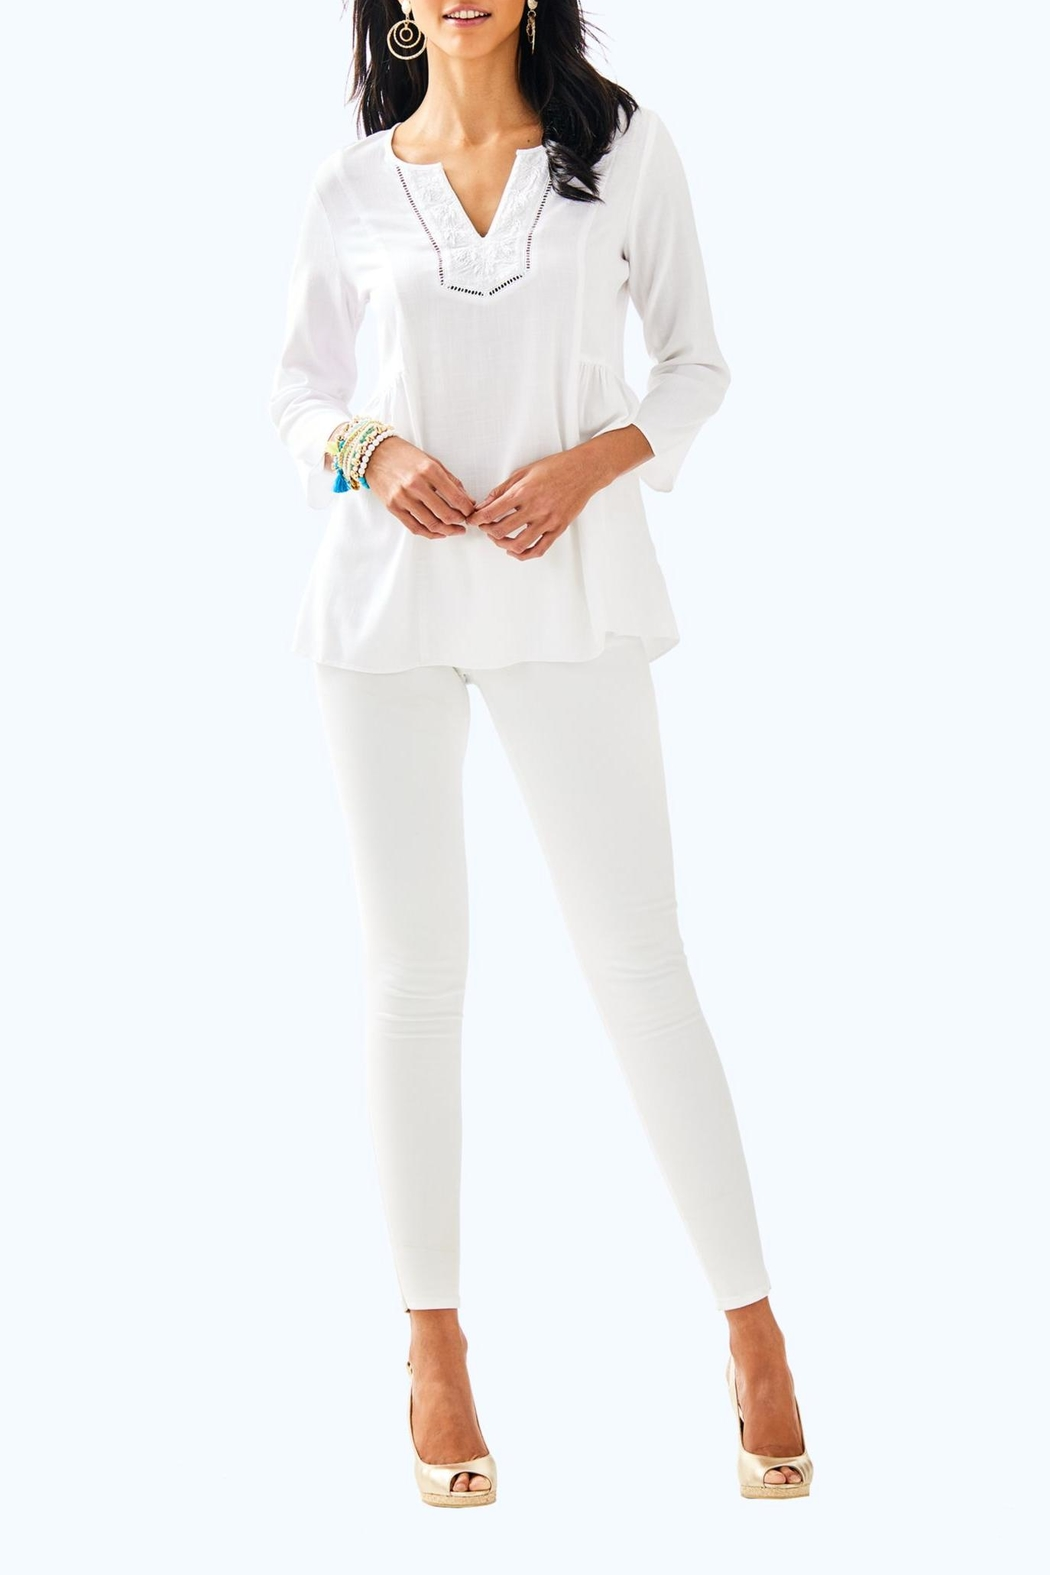 Lilly Pulitzer Lyndsea Tunic - Side Cropped Image